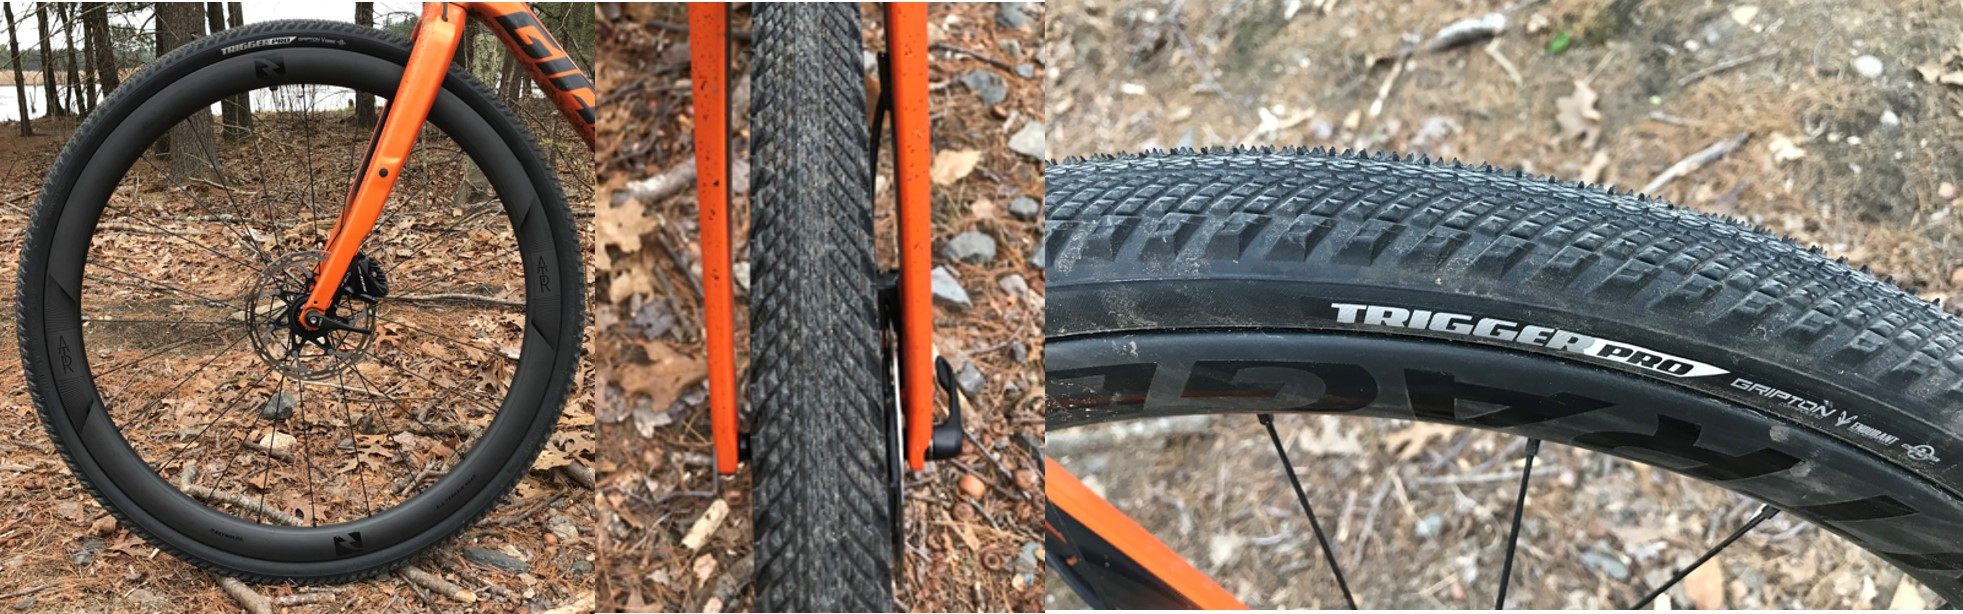 Specialized Trigger Pro Gravel Tires